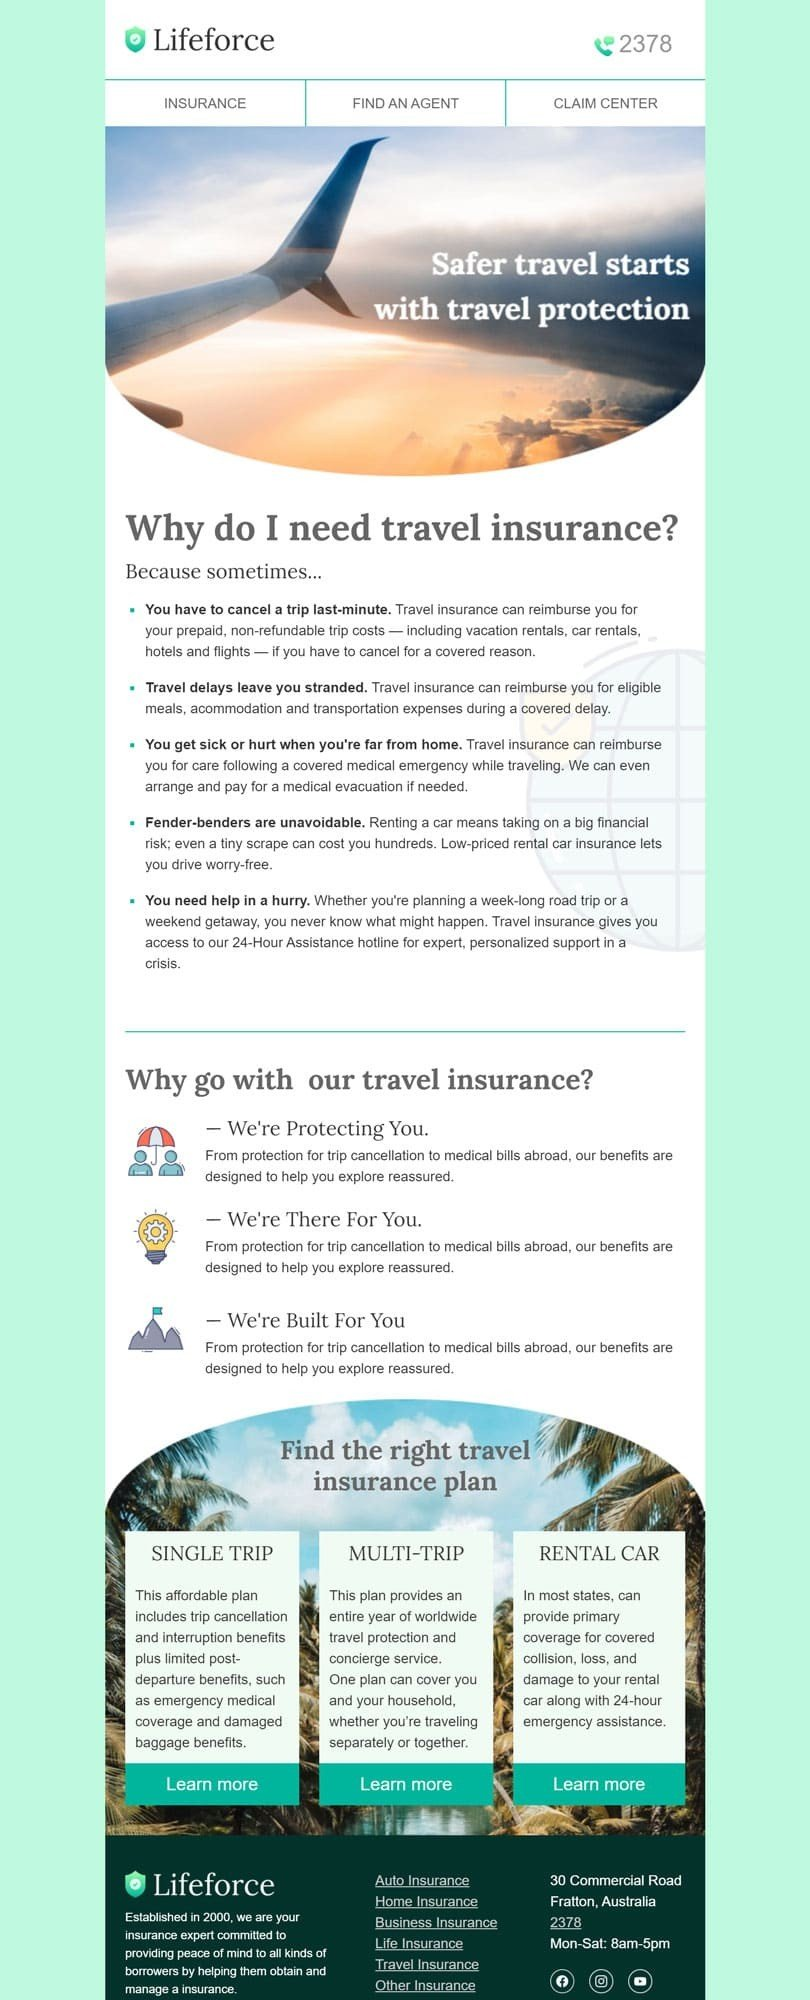 Promo Email Template «Travel insurance» for Insurance industry desktop view